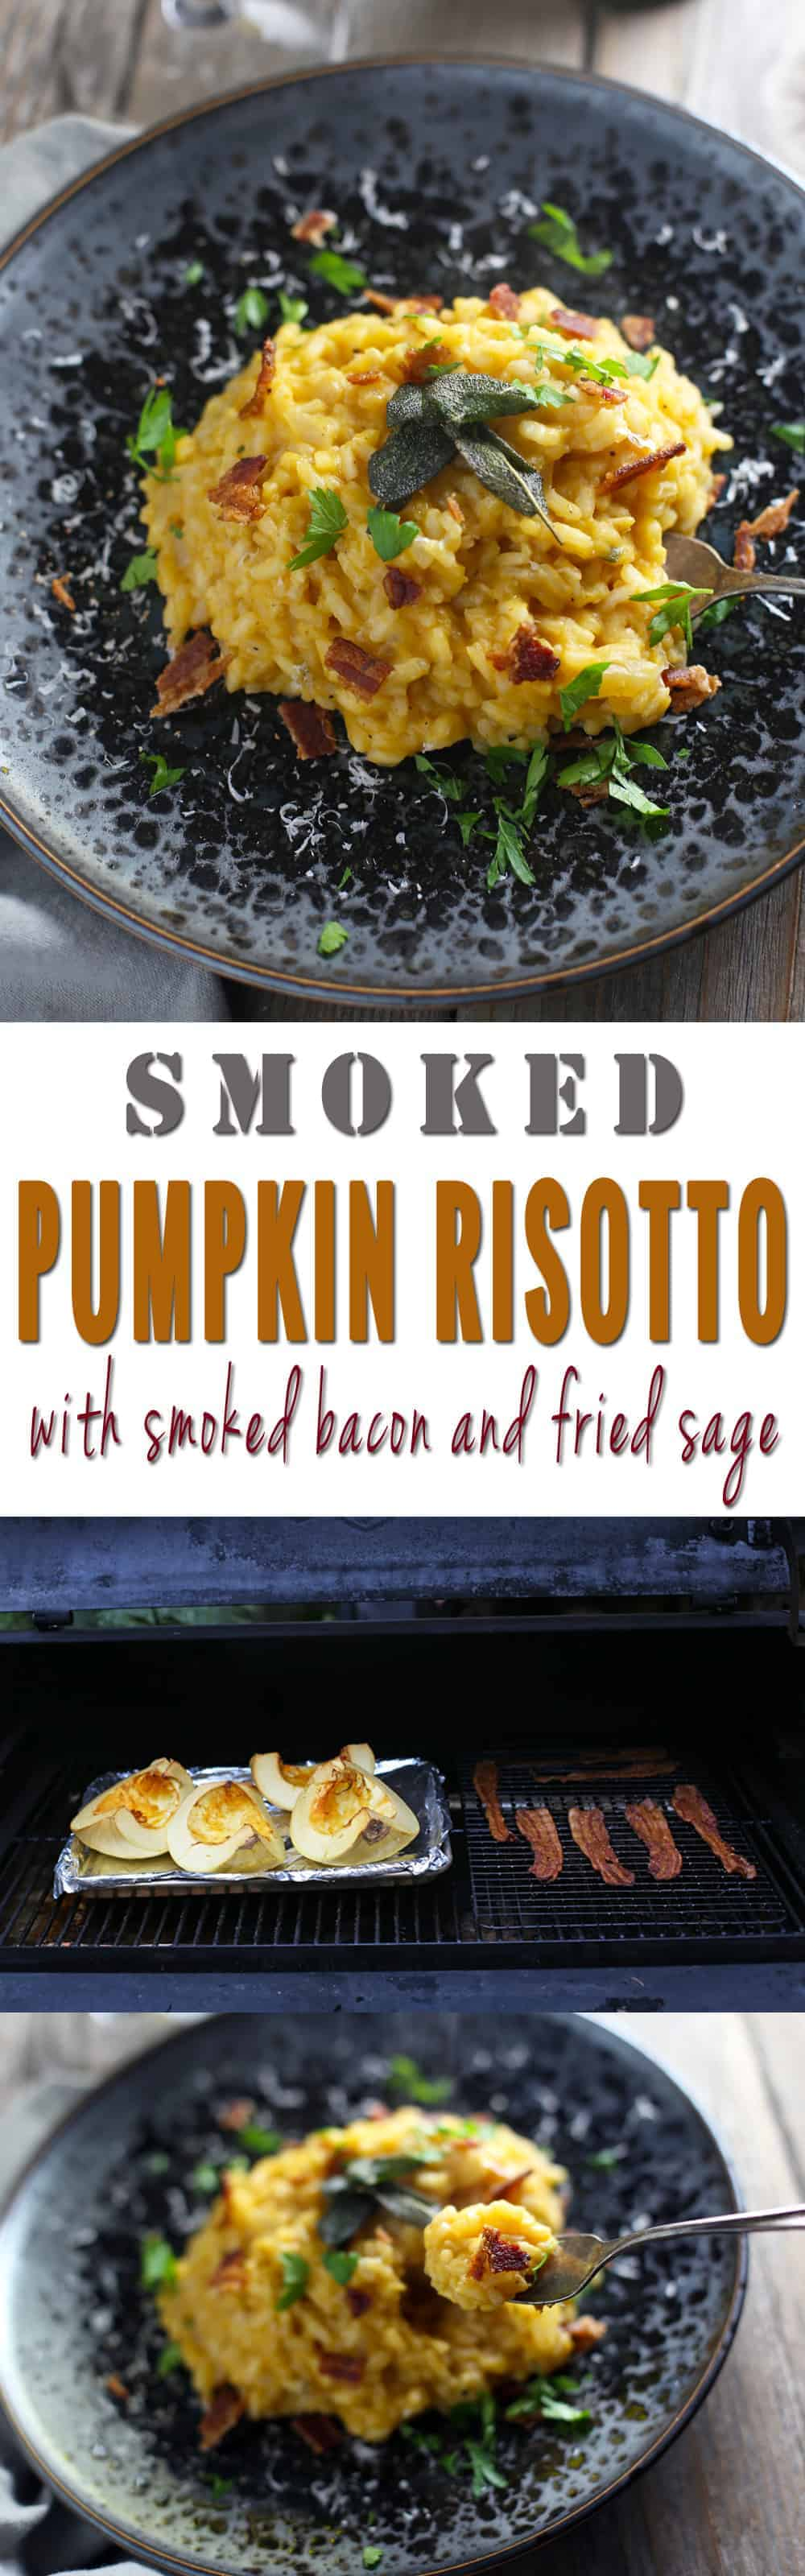 Smoked Pumpkin Risotto with Smoked Bacon and Fried Sage. The ultimate fall themed recipe for smoked food lovers! Super indulgent and oh-so-delicious!